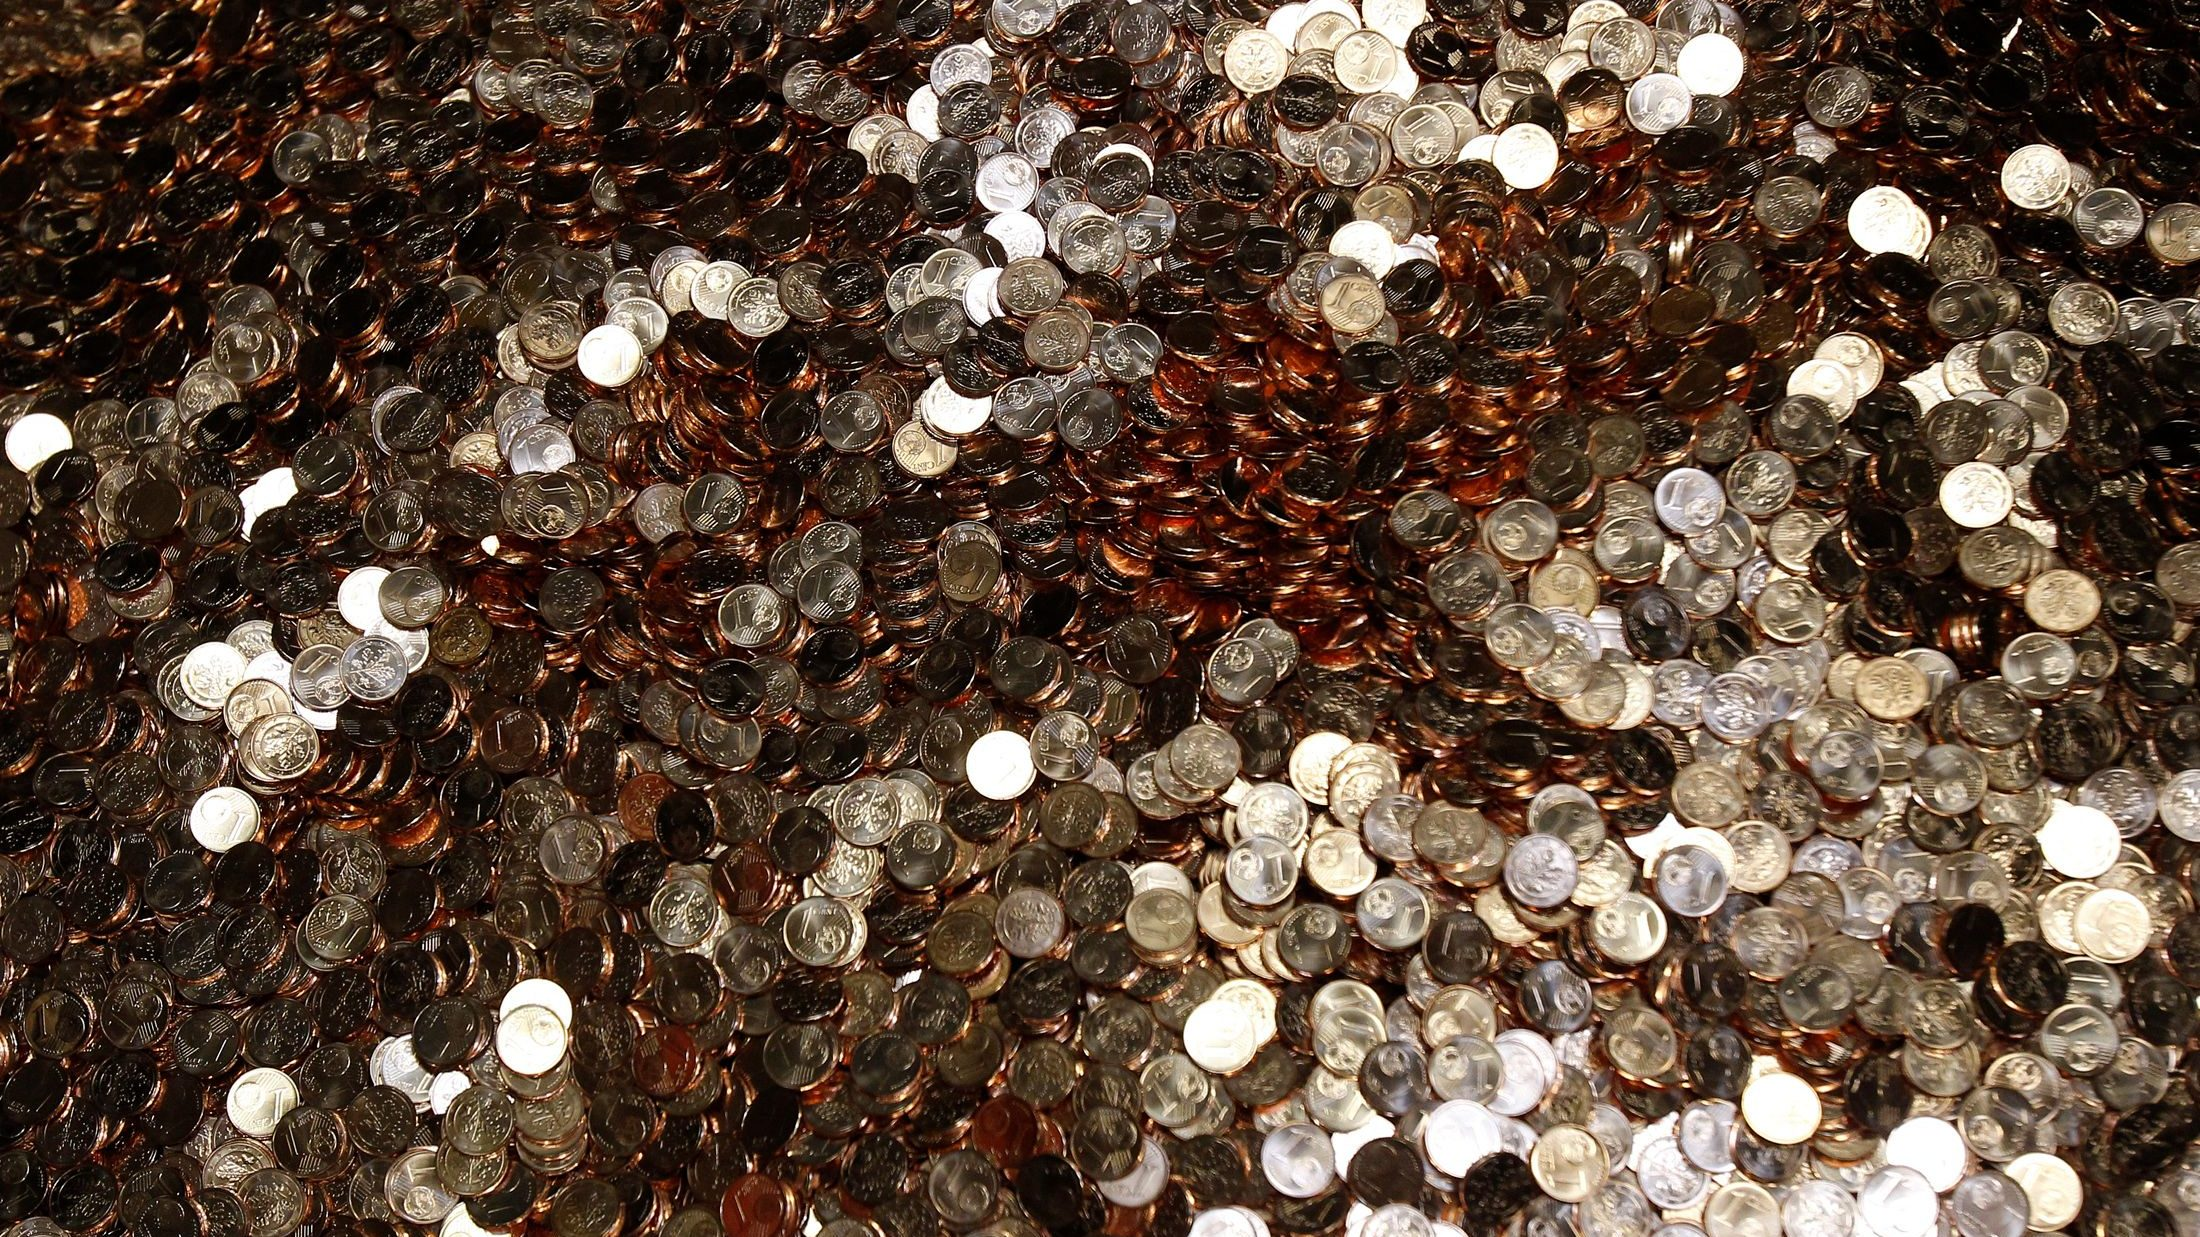 a plethora of pennies